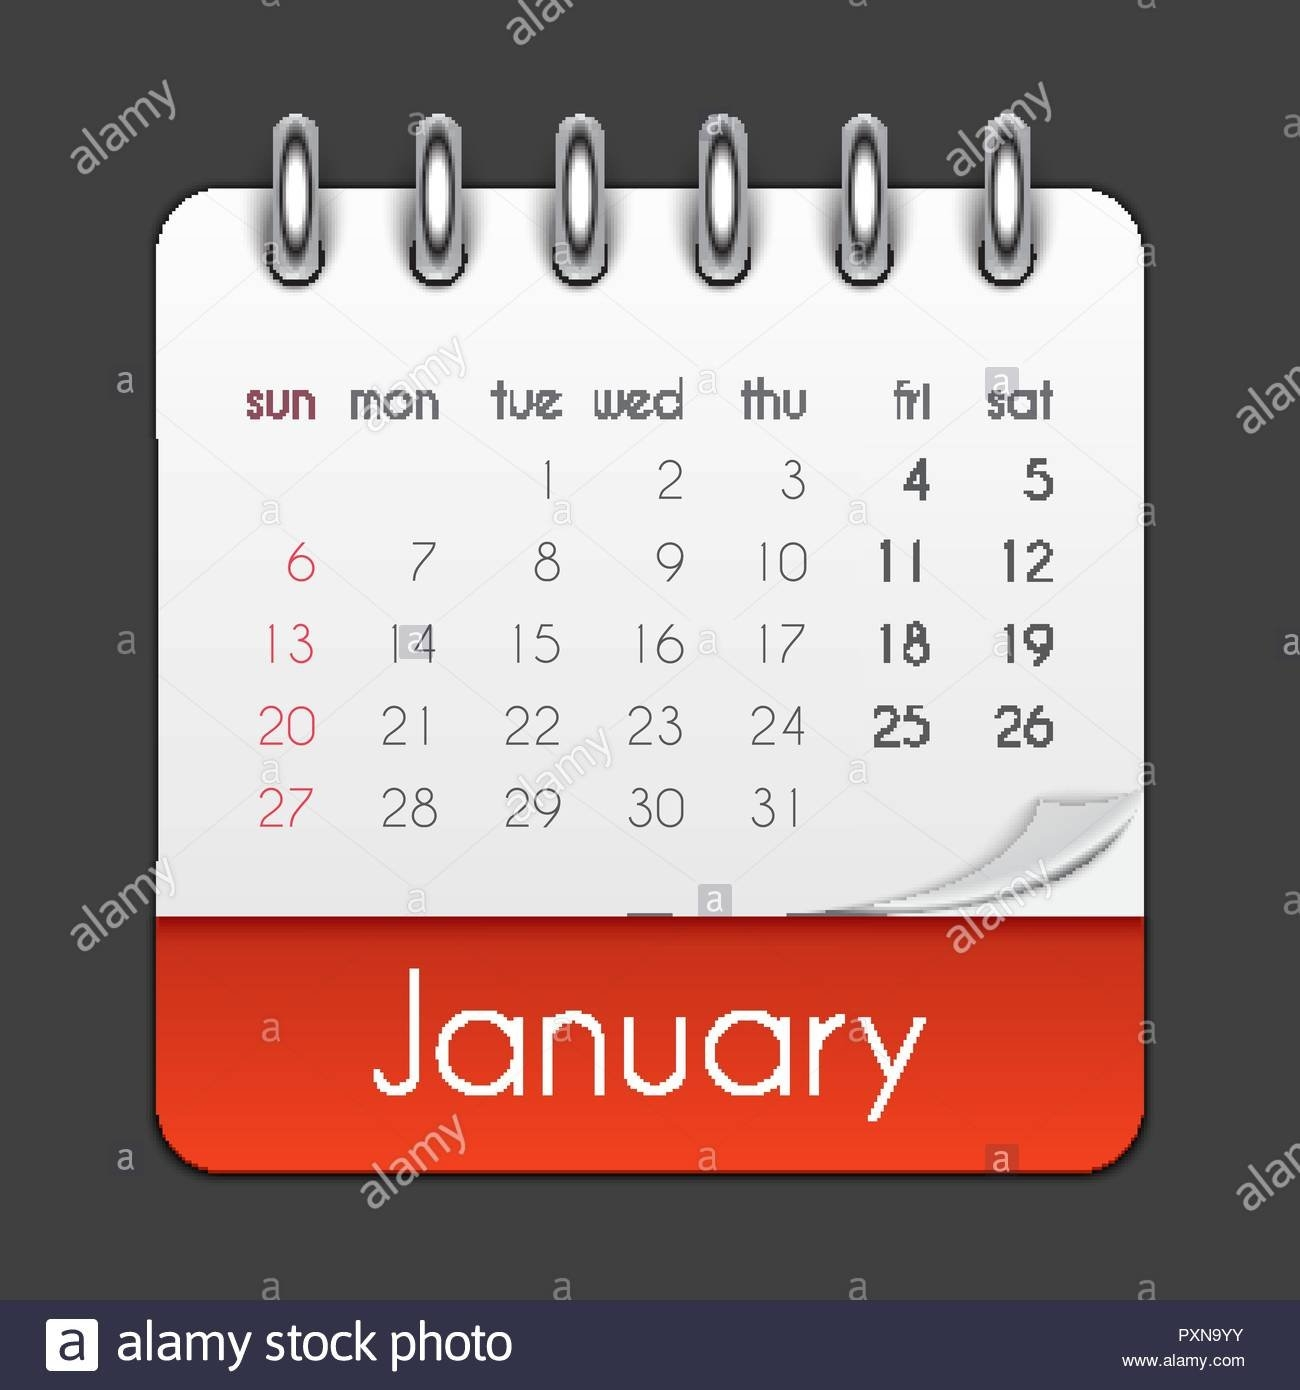 January 2019 Calendar Leaf Template Vector Illustration Stock Vector January 7 2019 Calendar